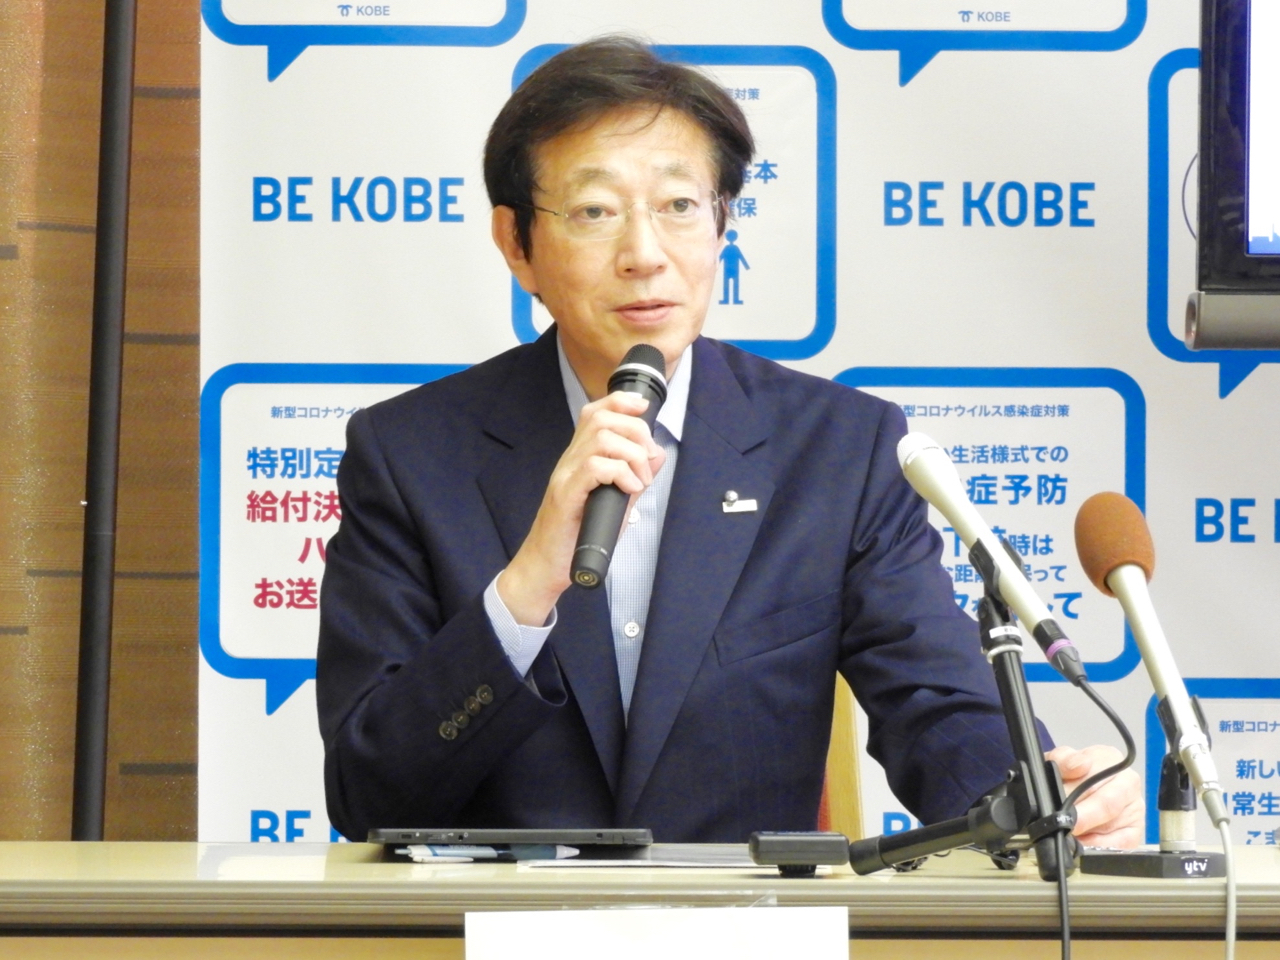 "We aim to improve administrative services by actively utilizing rather than being used for advanced technology,"" says Kizo Hisamoto, Mayor of Kobe."